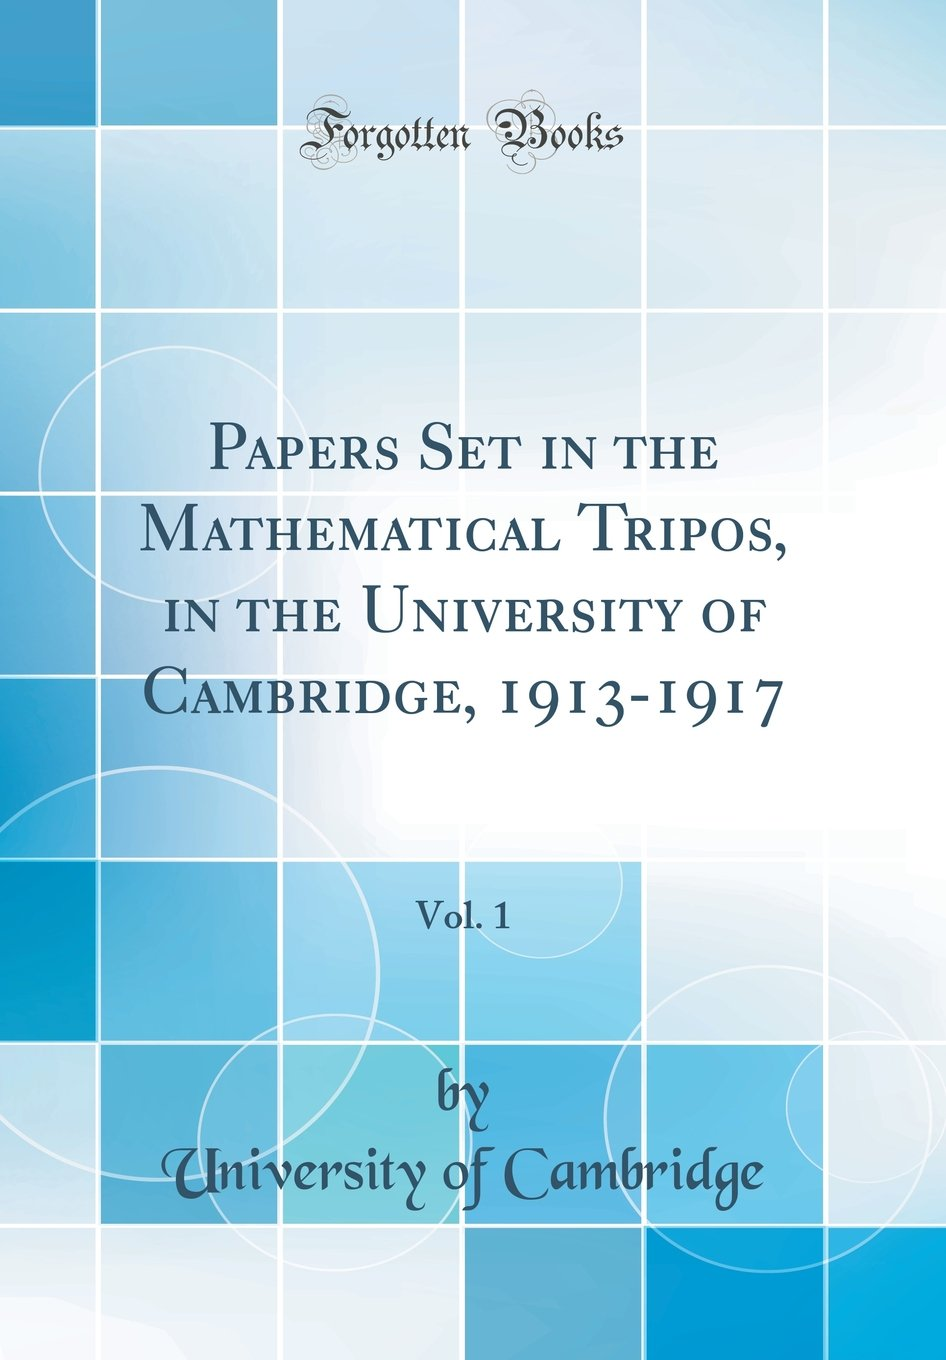 Papers Set in the Mathematical Tripos, in the University of Cambridge, 1913-1917, Vol. 1 (Classic Reprint) ebook